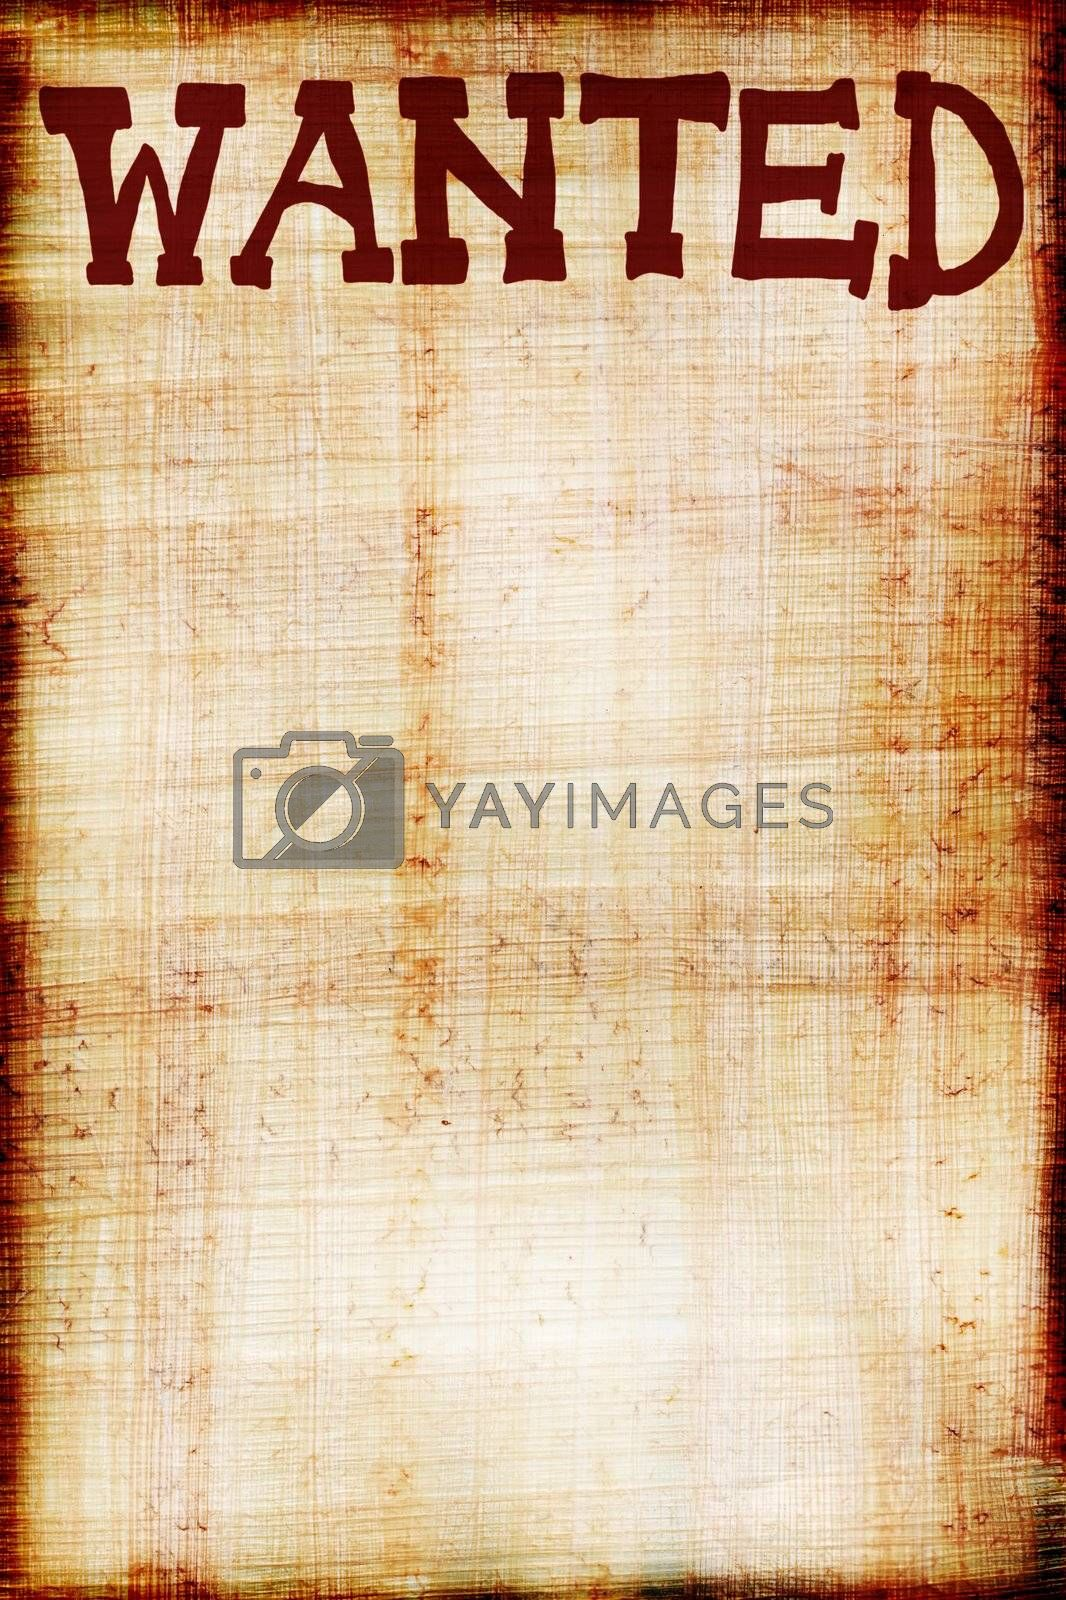 Wanted sign on papyrus background